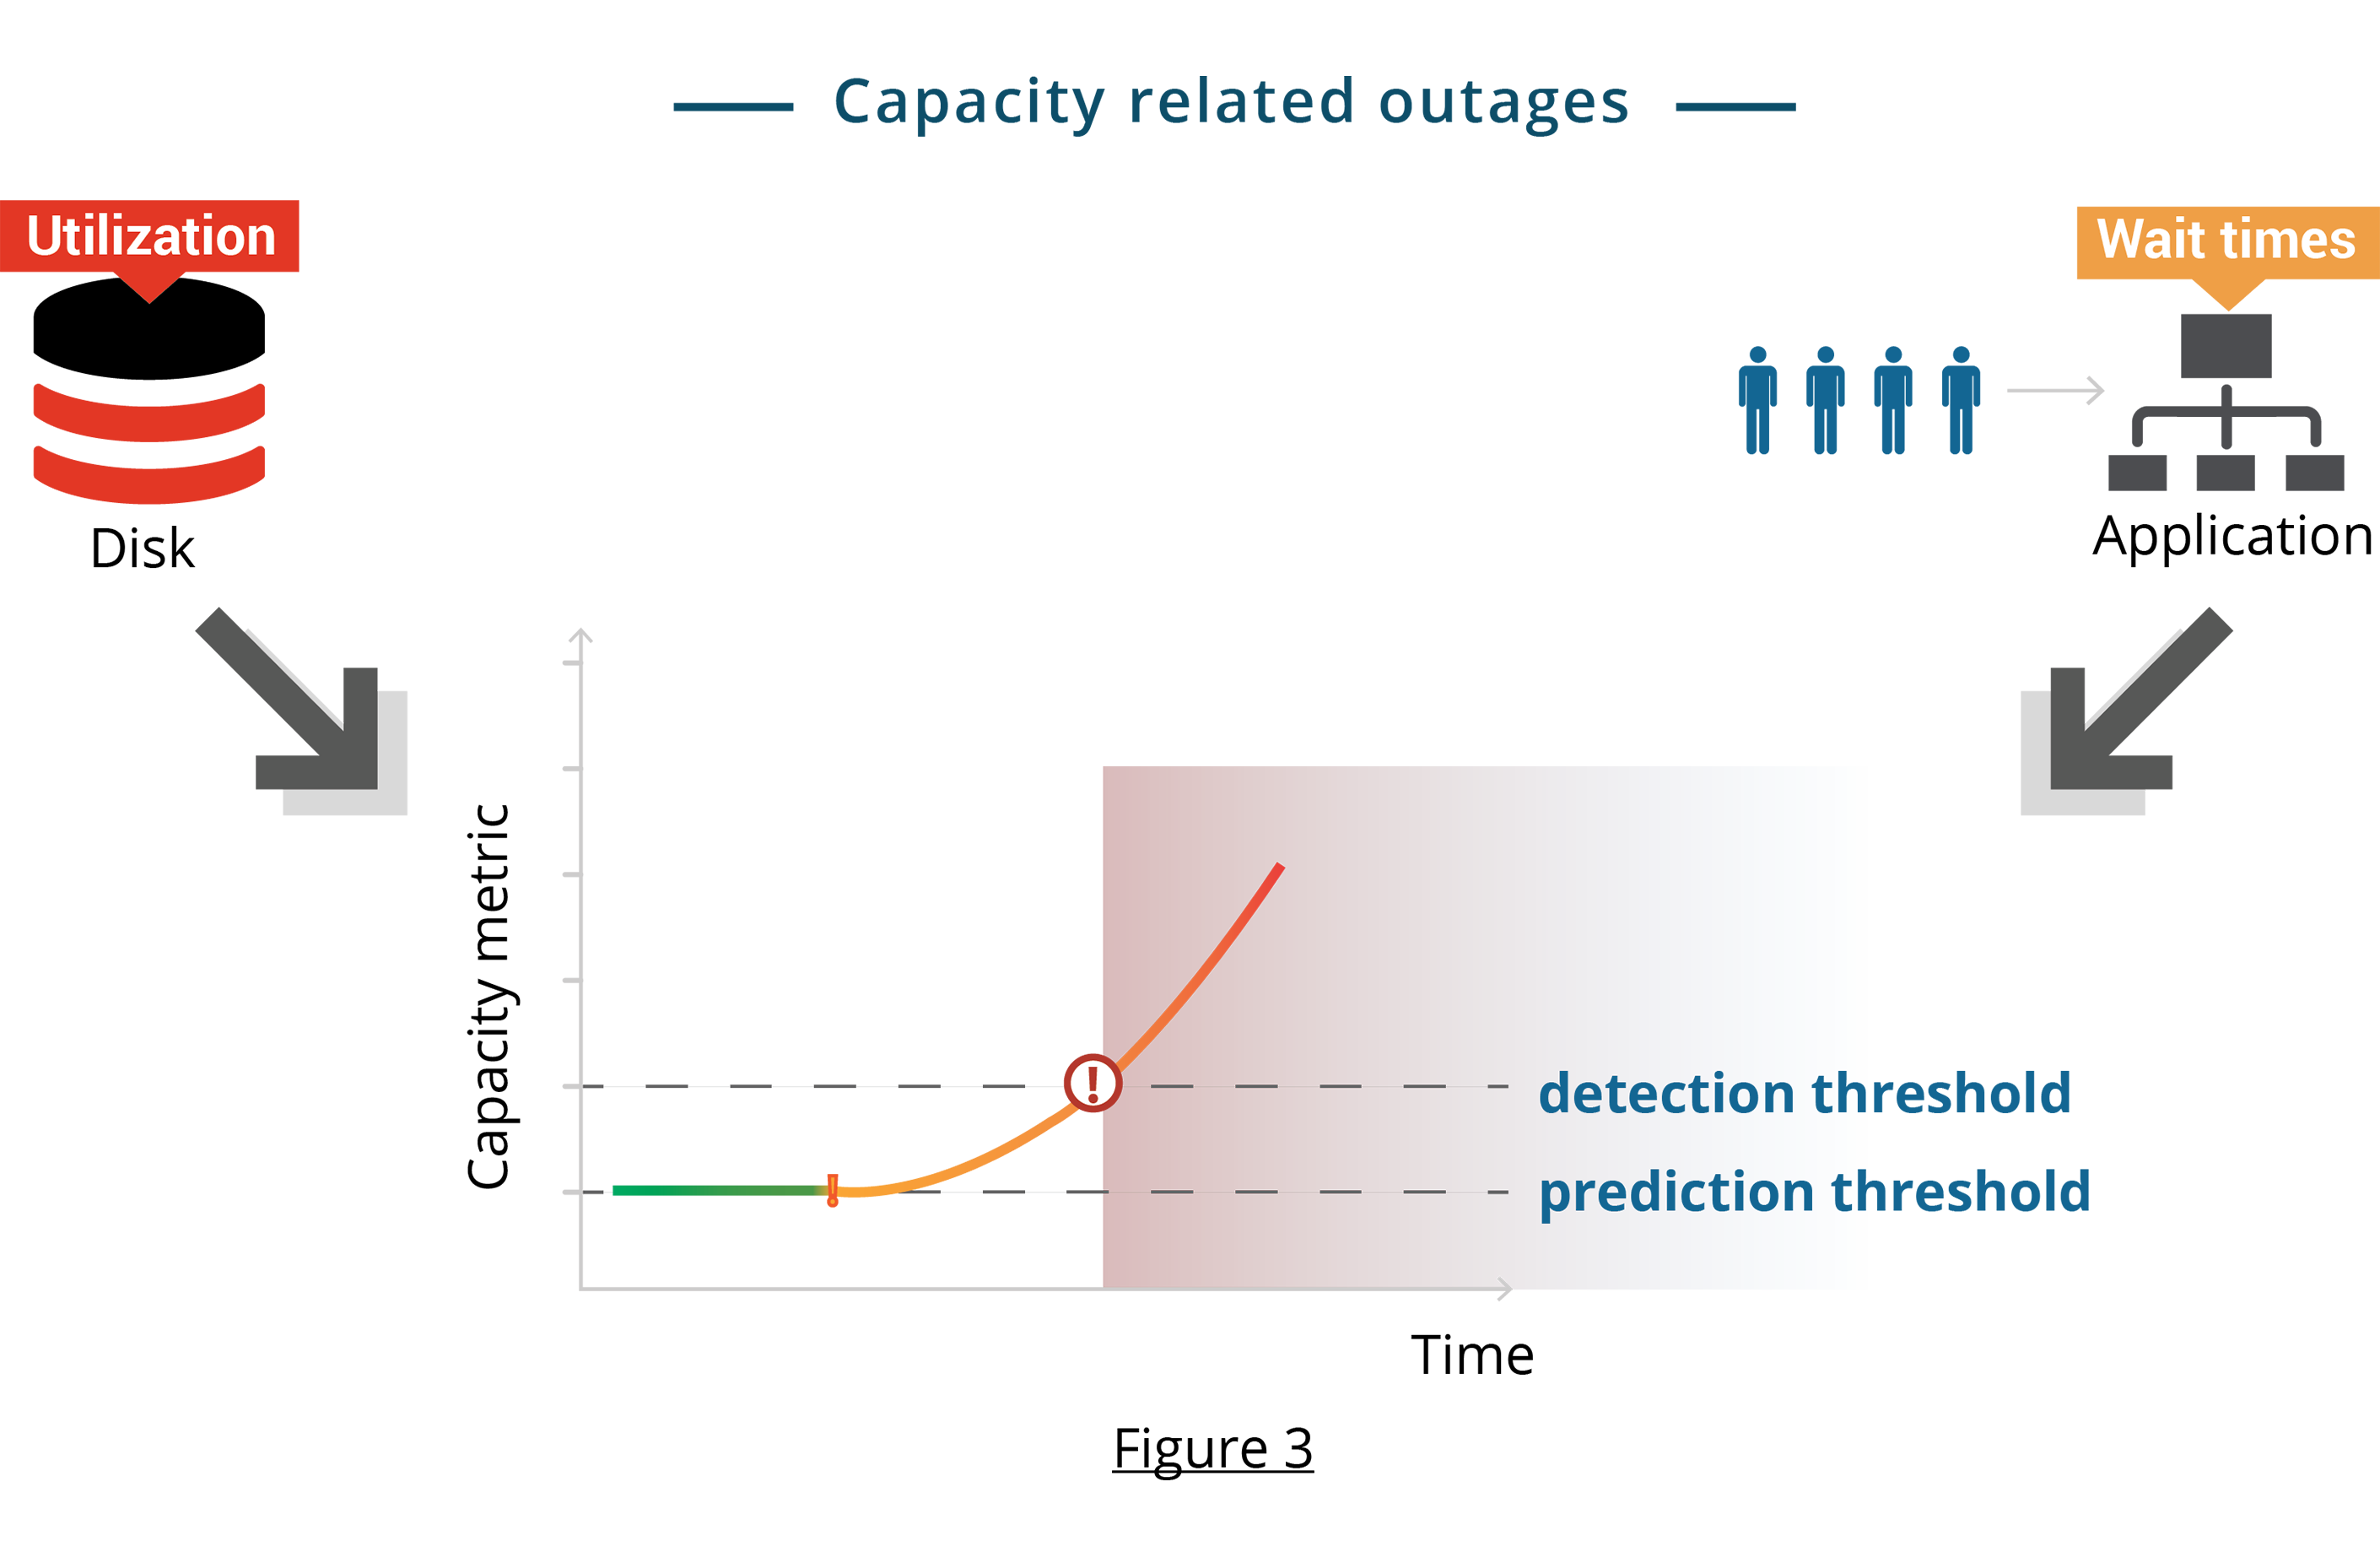 Capacity Related Outages